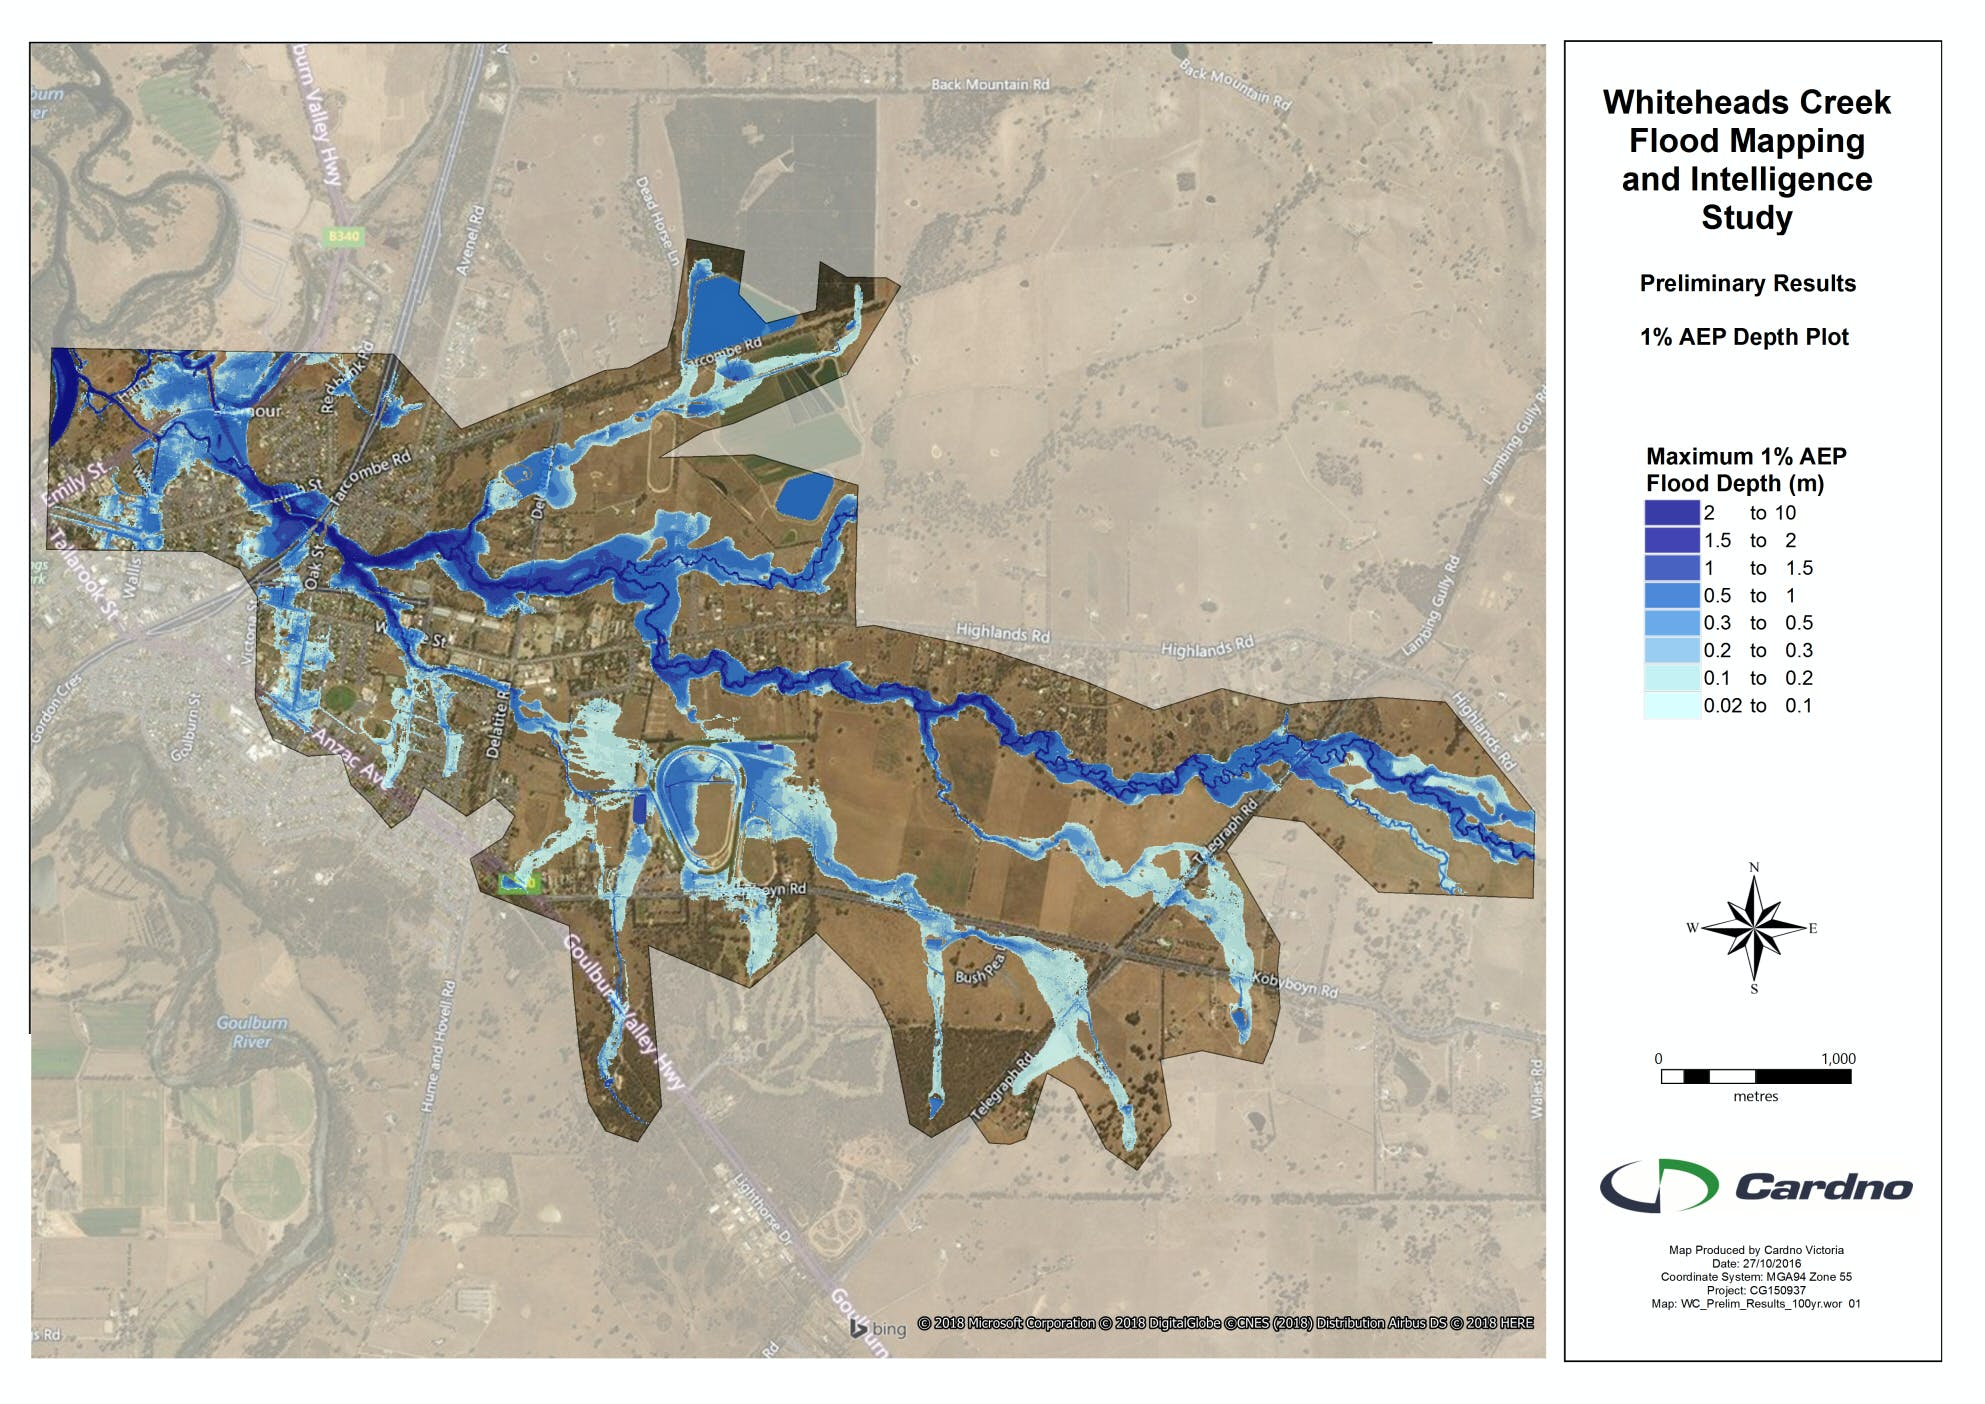 Lower Whiteheads Creek flood study area